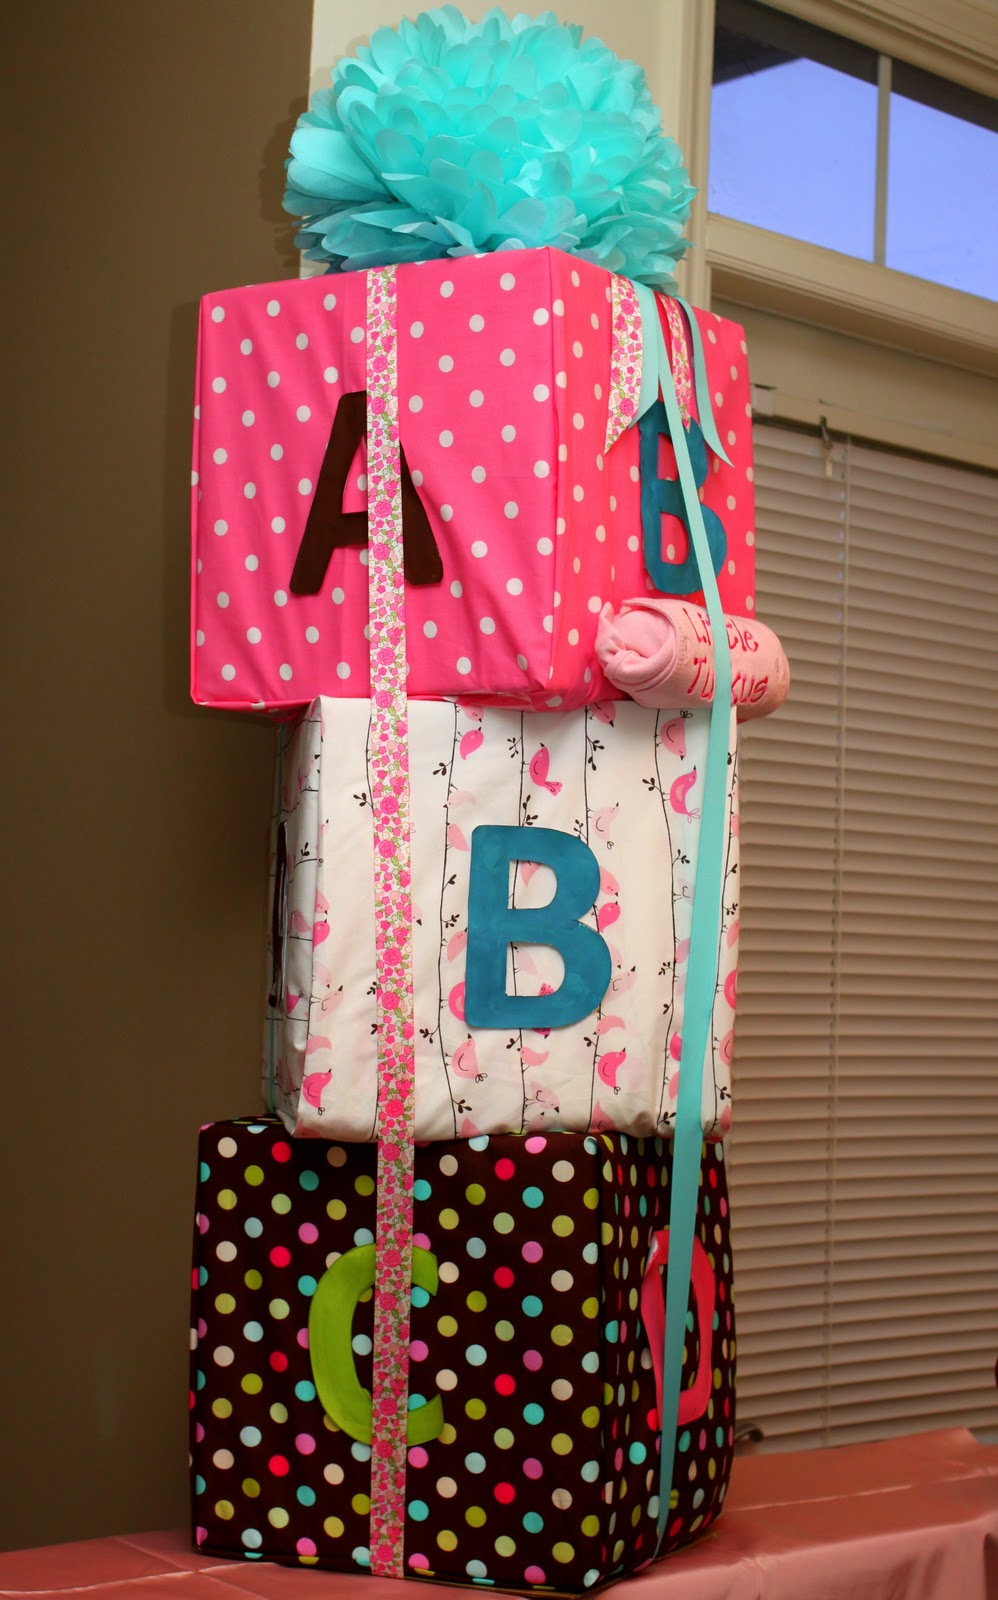 Doo Dah Baby Blocks A Baby Shower Gift With No Wrapping Paper